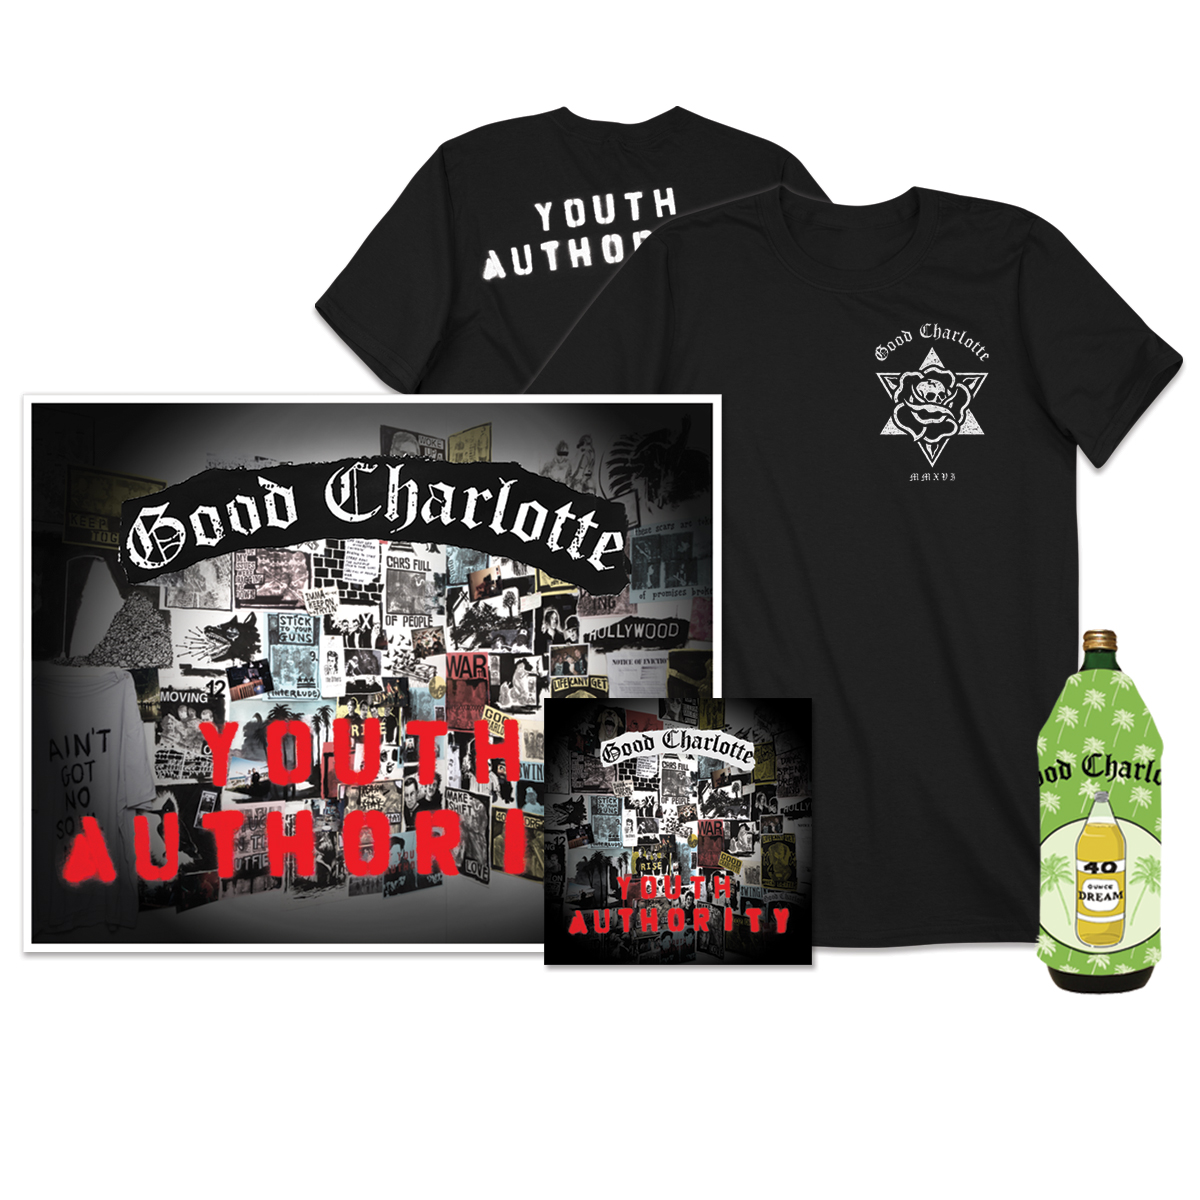 Youth authority cd signed litho t shirt koozie shop for Shirts and apparel koozie